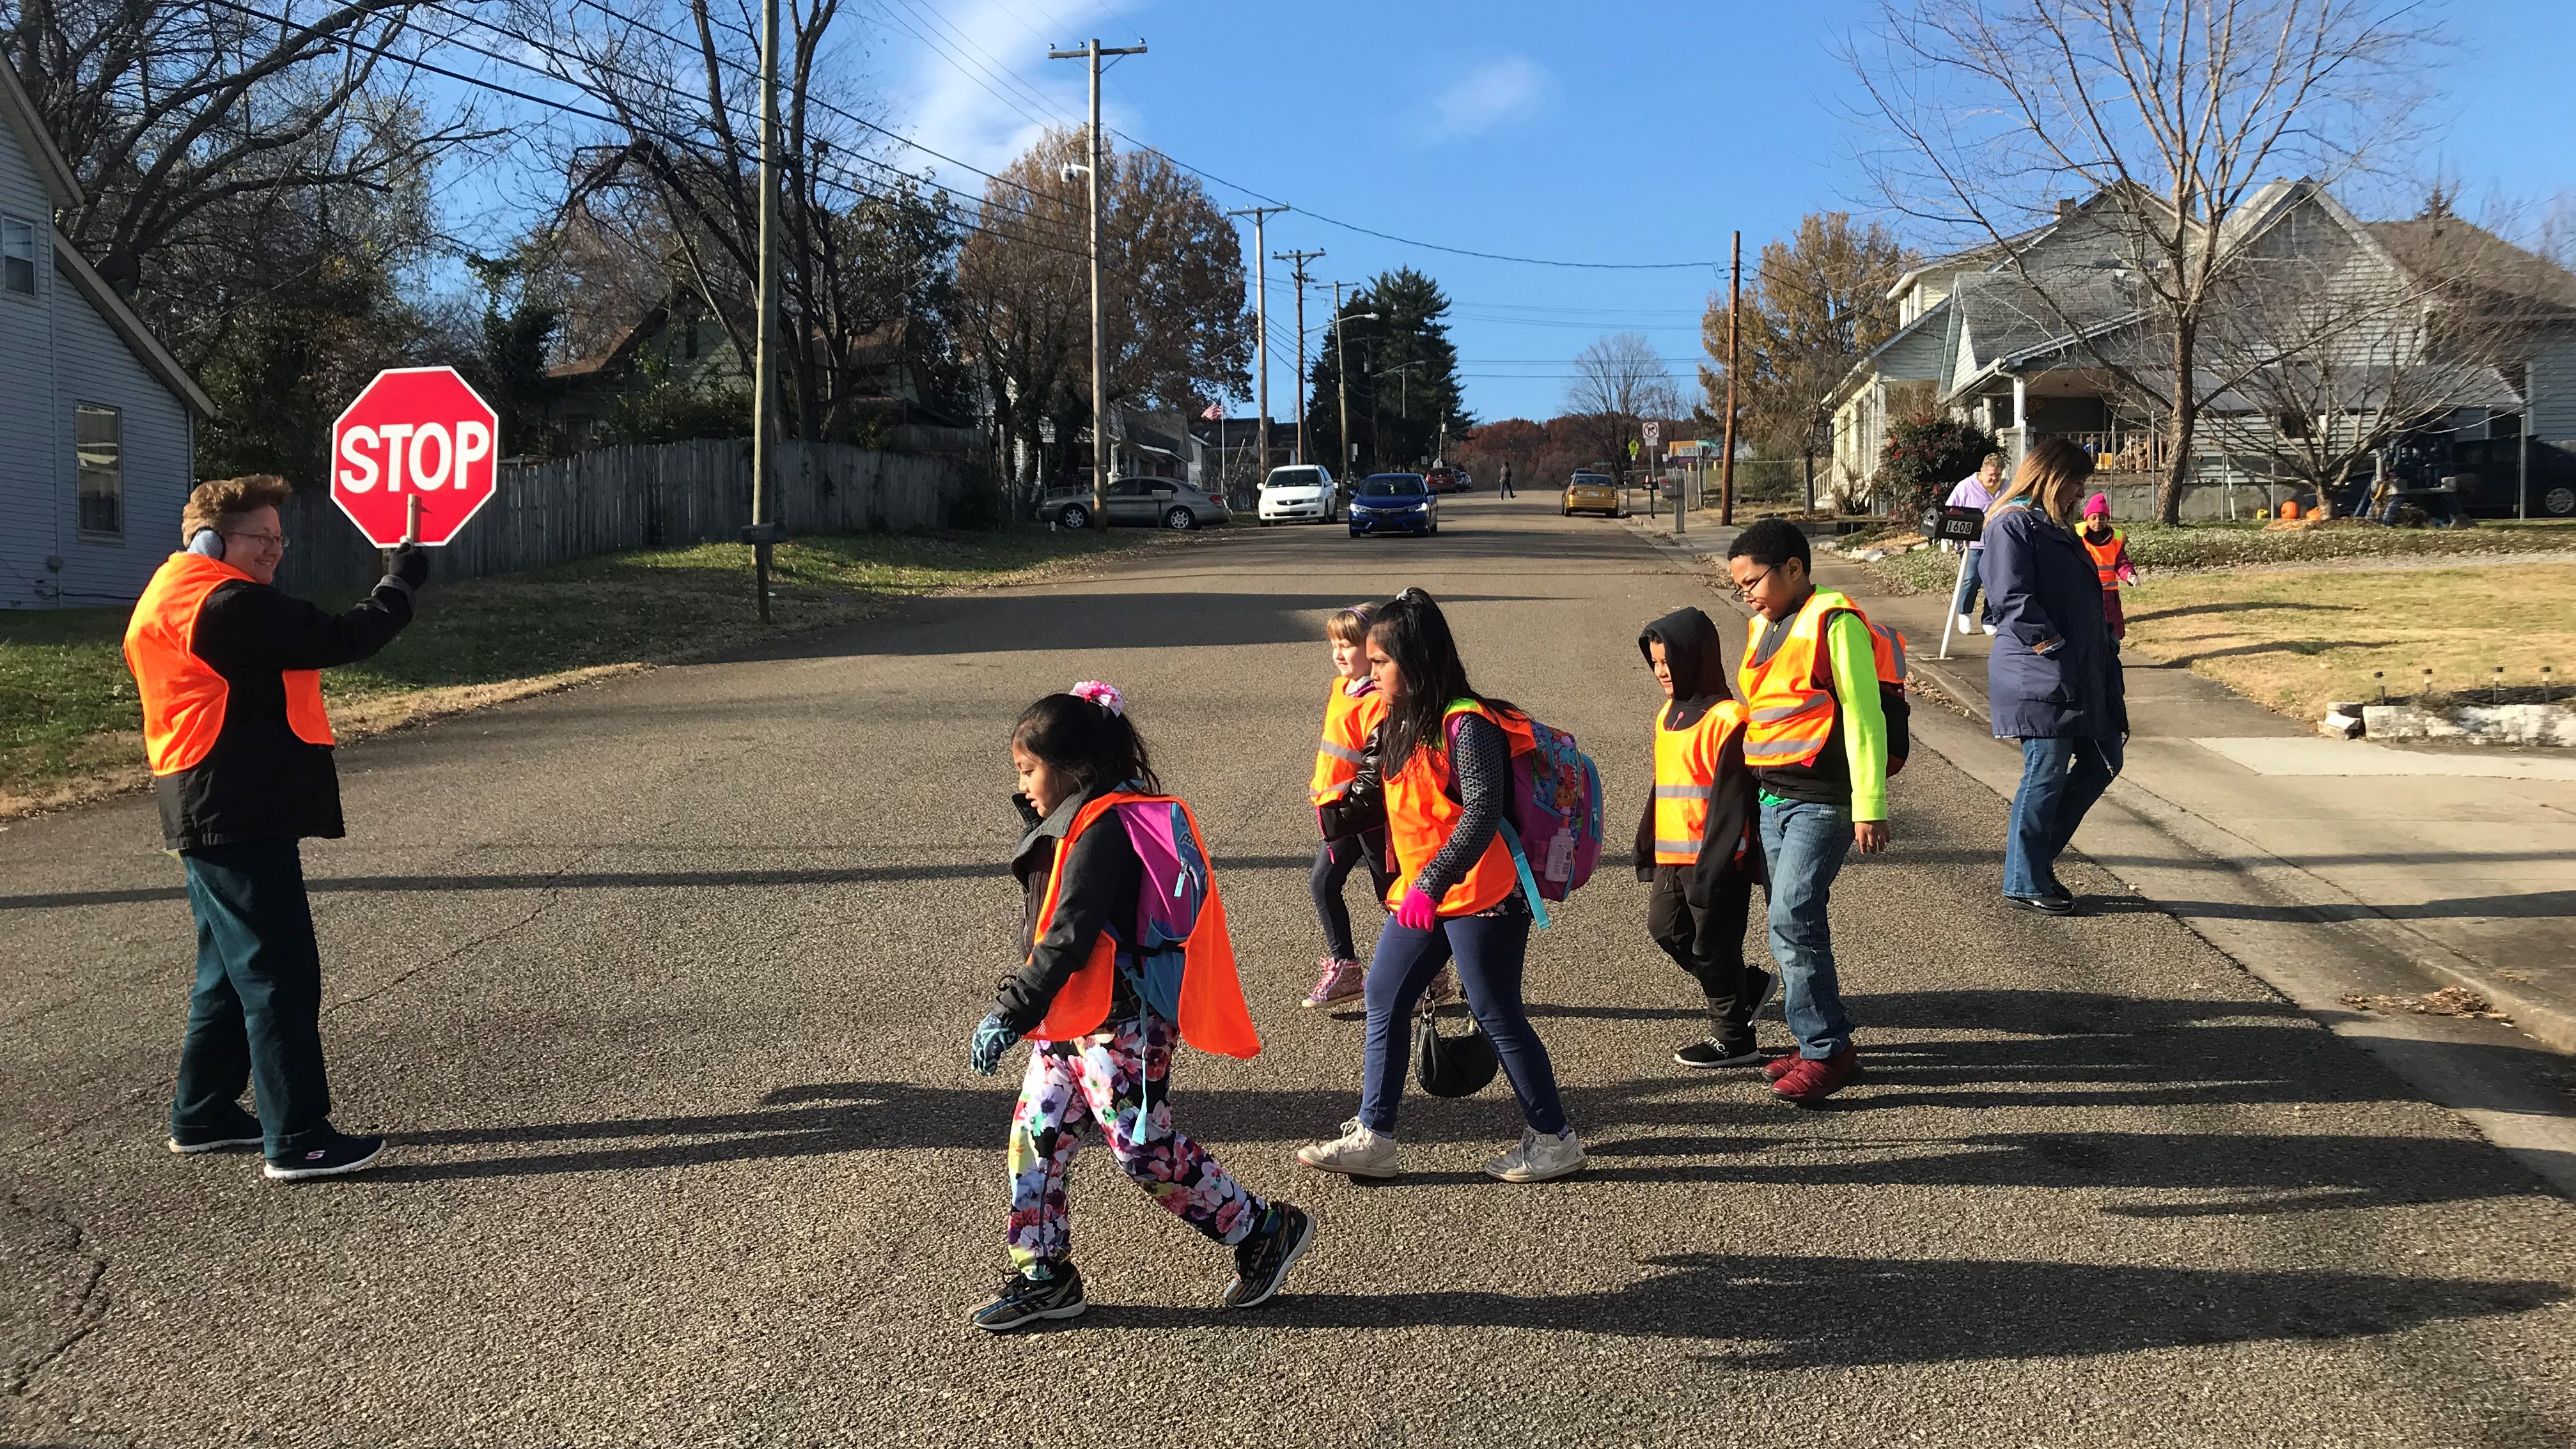 Teaching assistant Cindy Poland holds a stop sign as students from West View Elementary School cross the street.